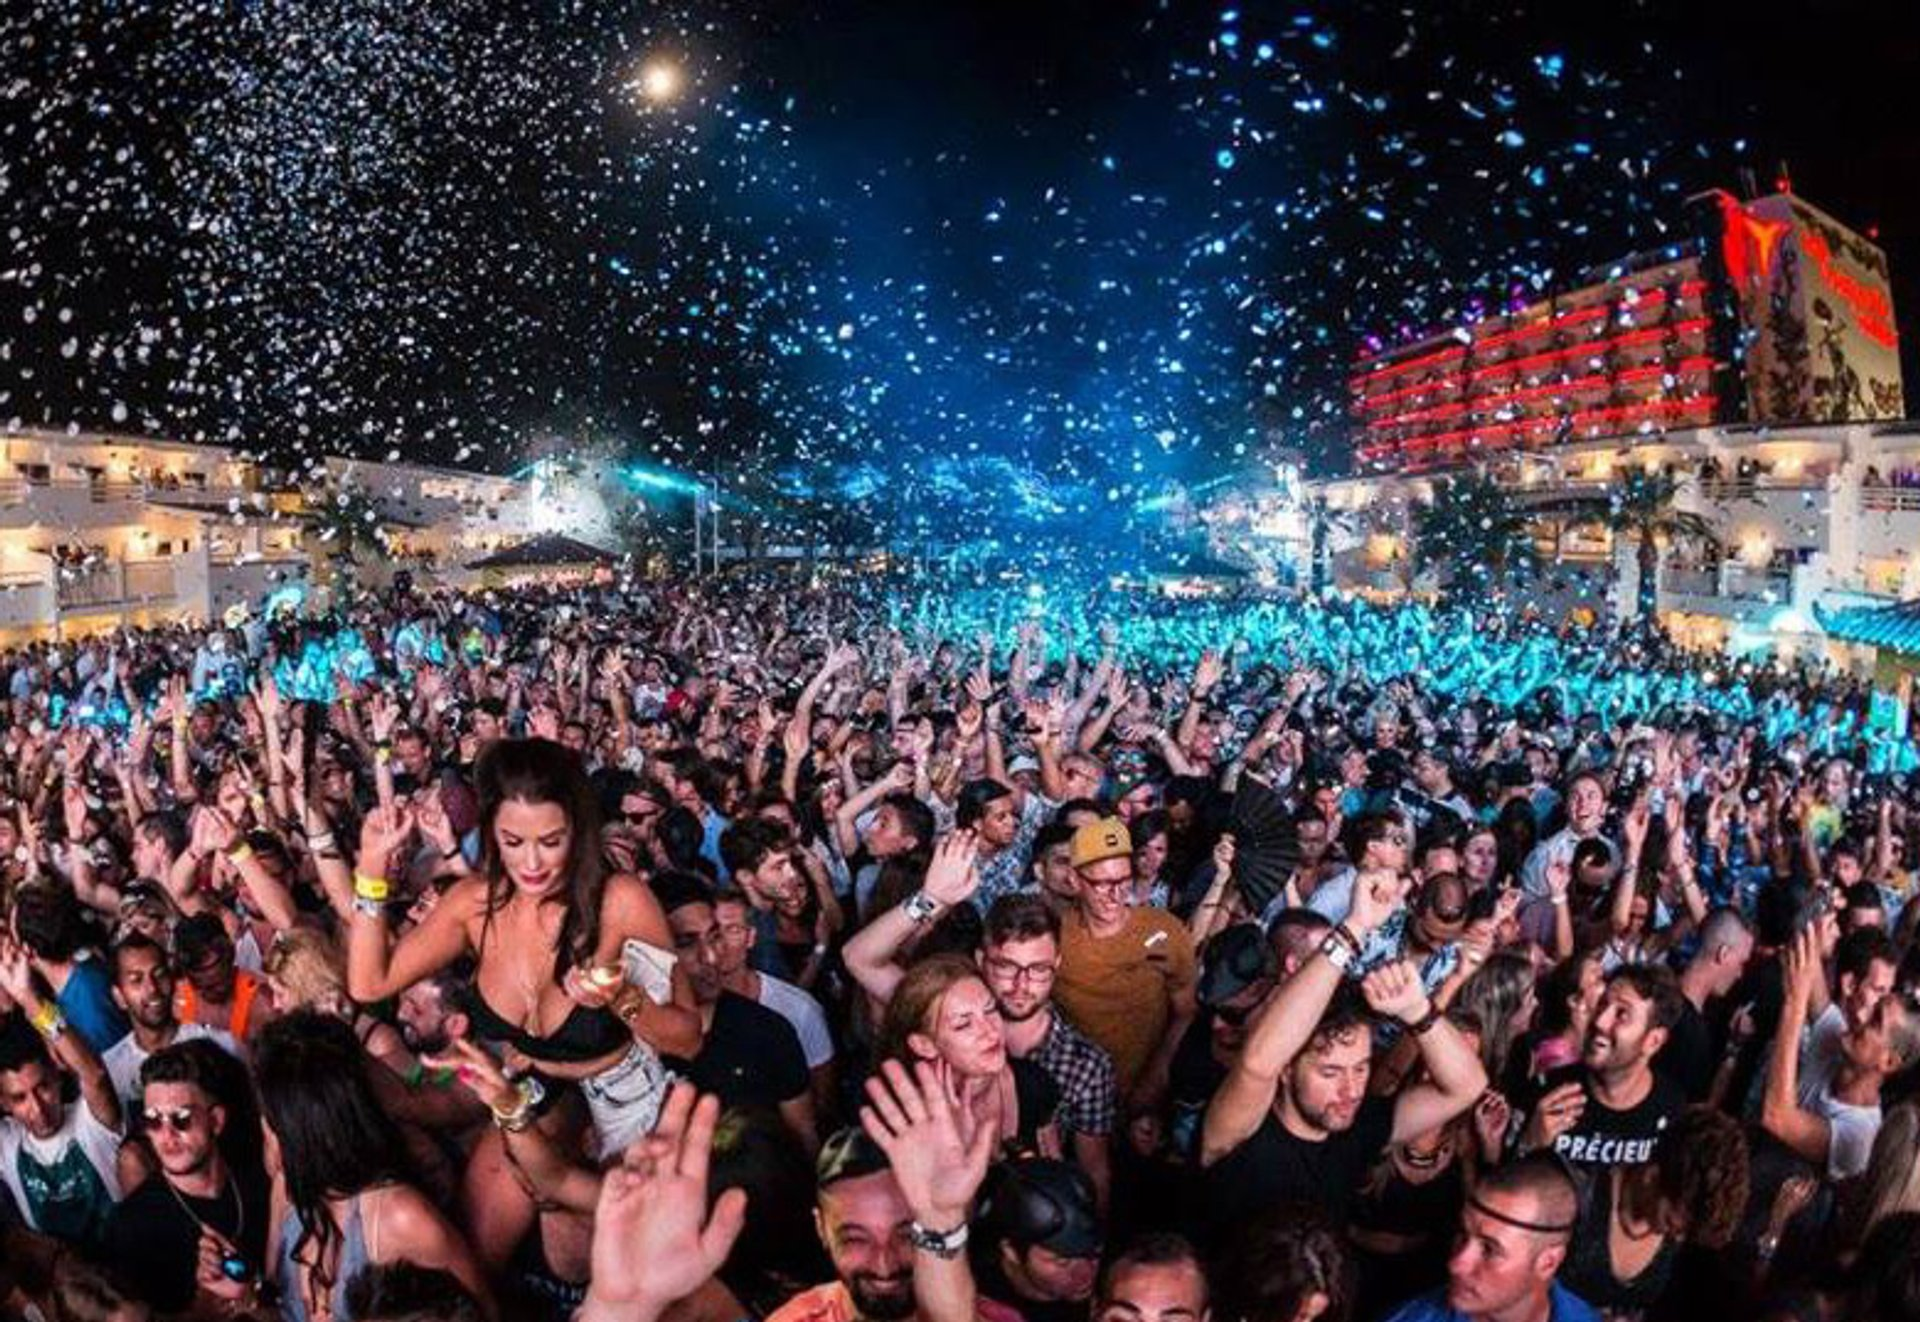 Ibiza Closing Parties in Ibiza 2019 - Best Time